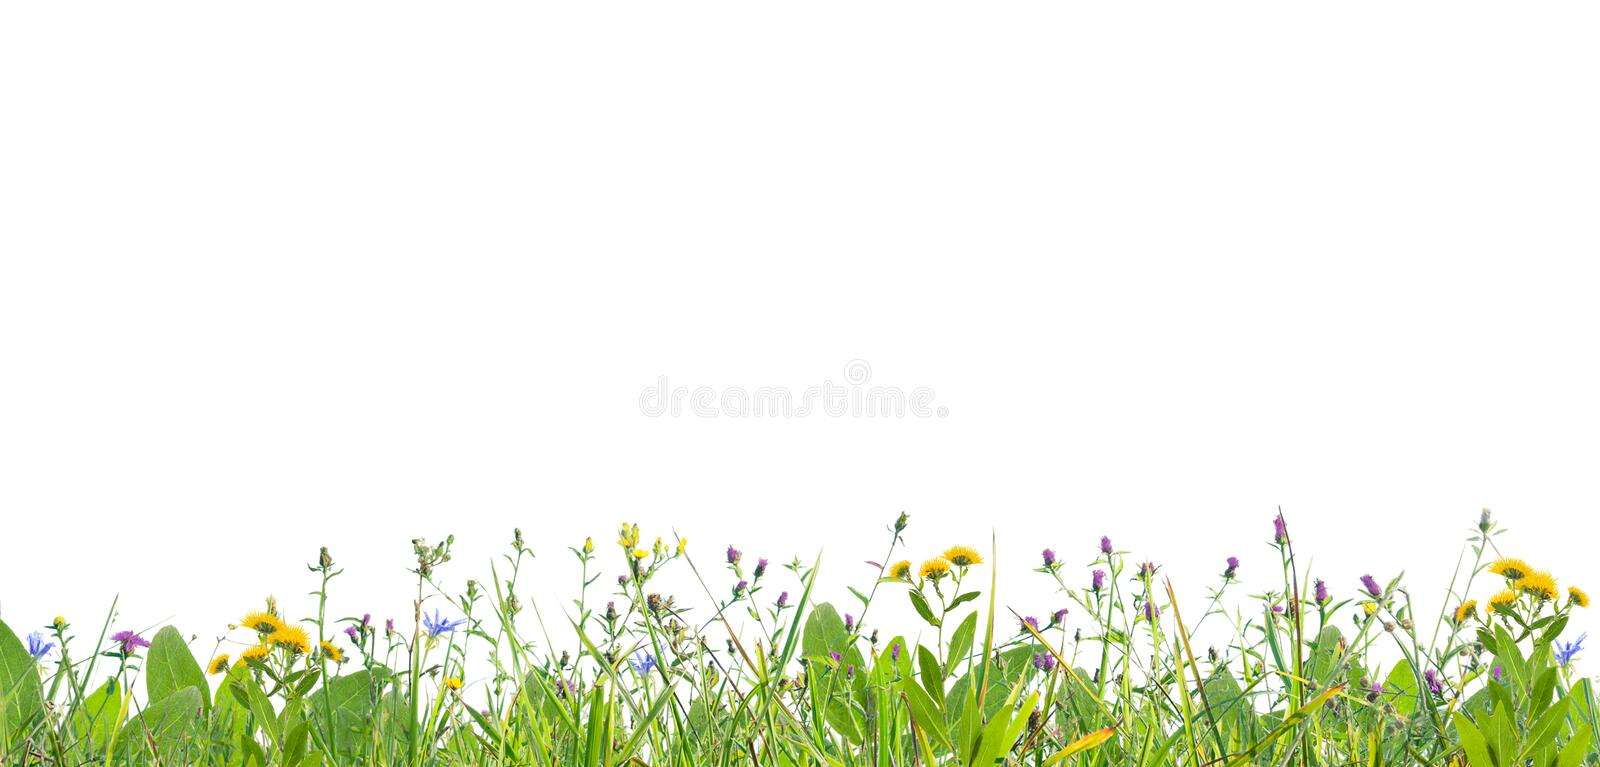 Grass and wild flowers stock images